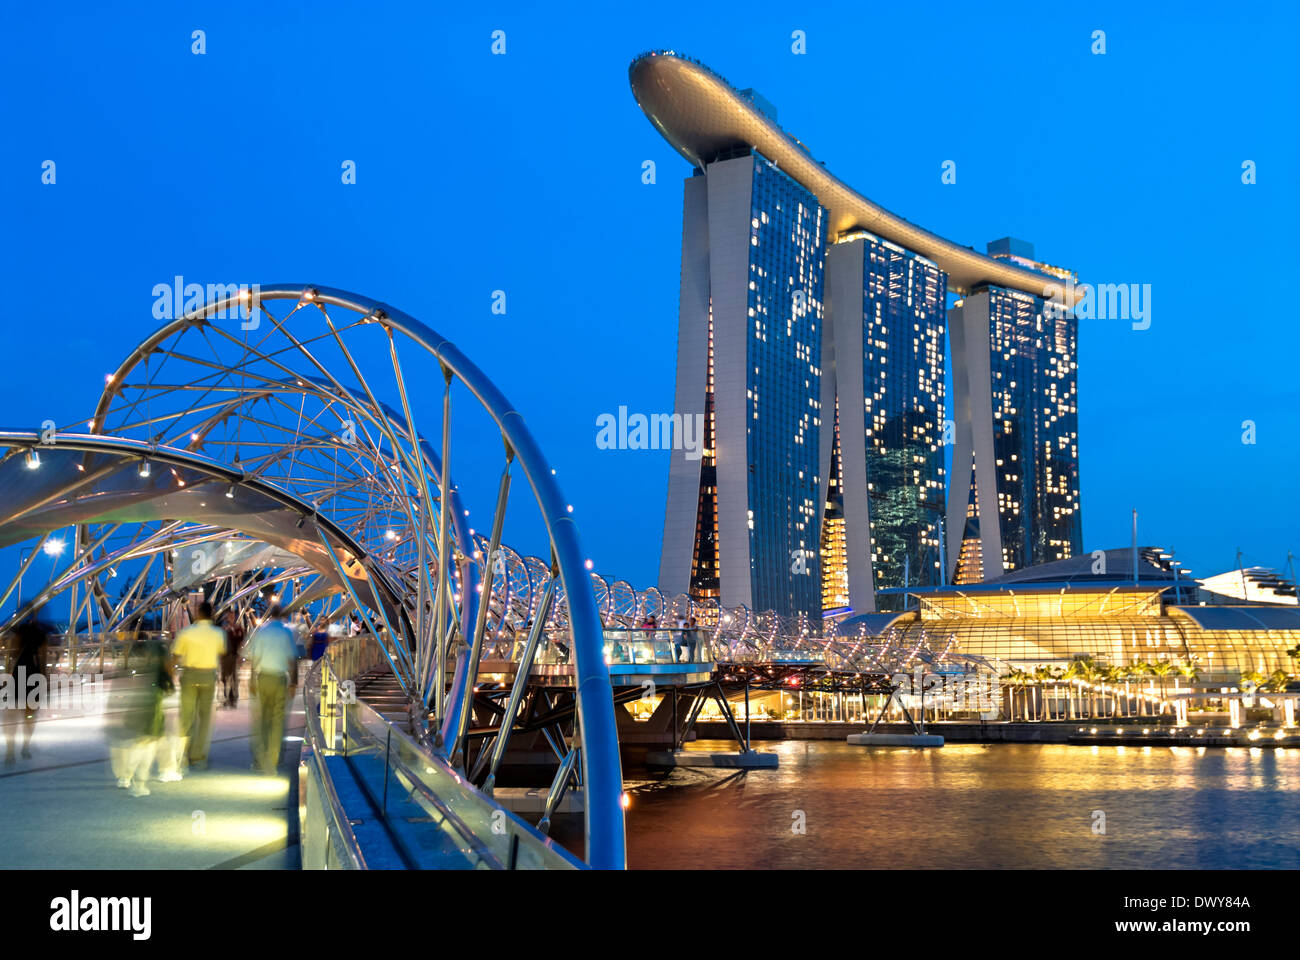 Night image of the new Marina Bay Sands Hotel and Casino in Singapore. - Stock Image